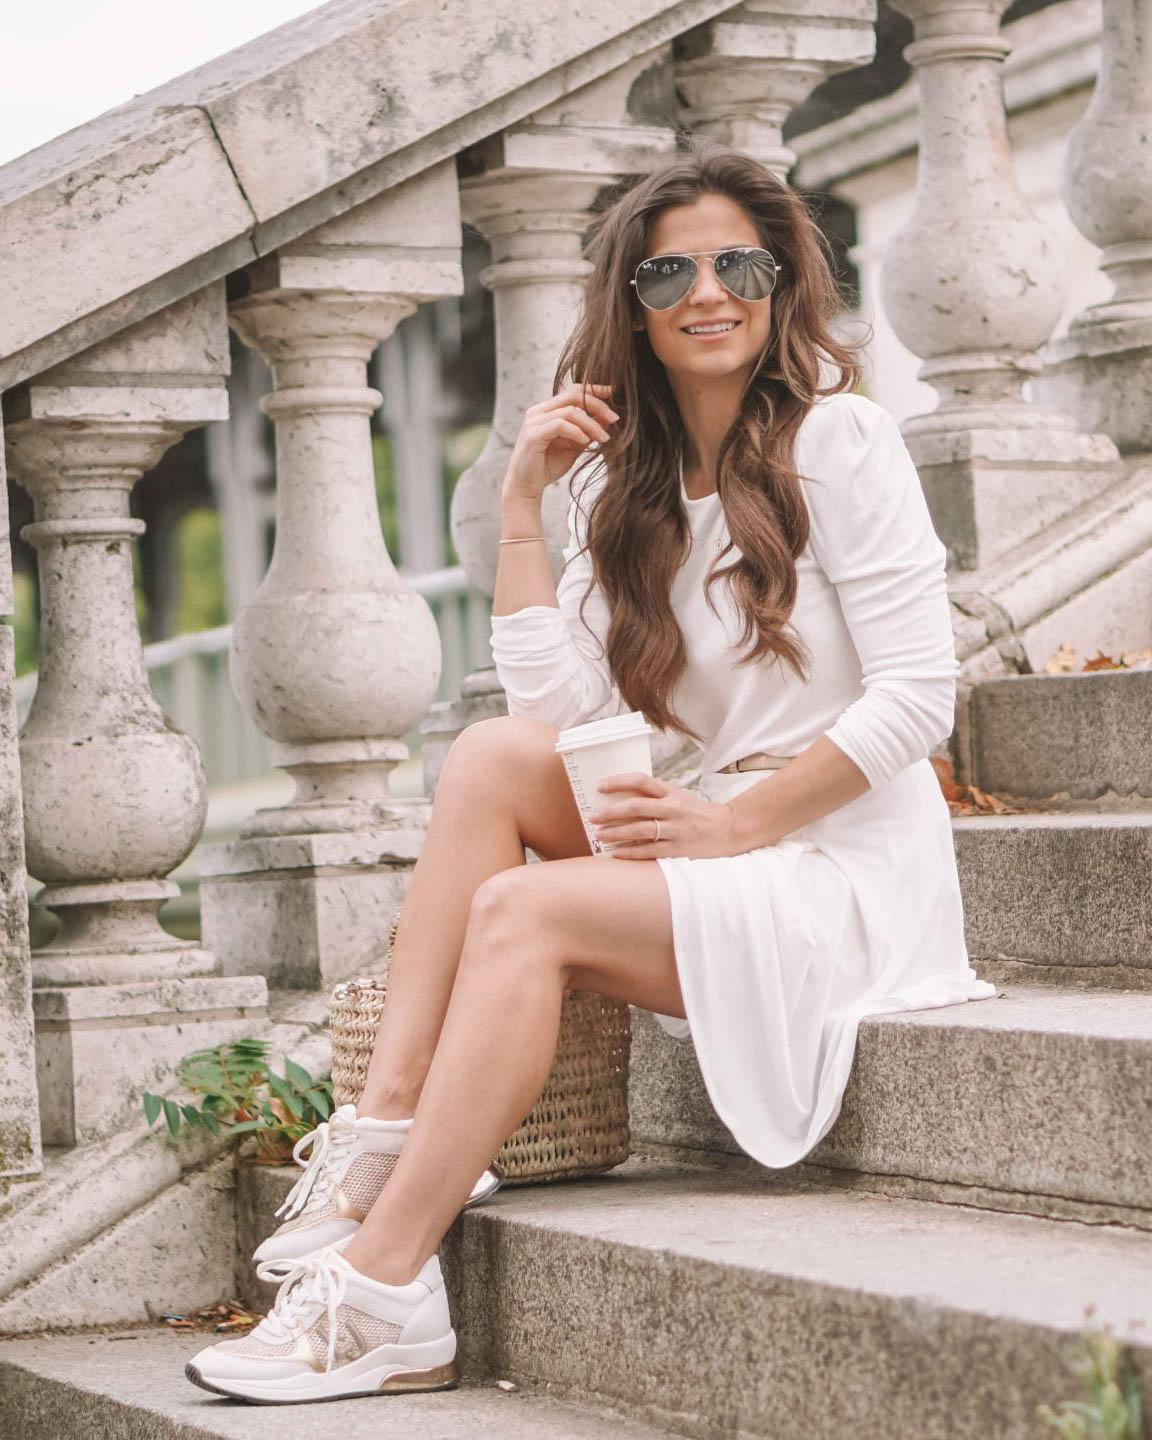 How To Wear Sneakers With A Dress Petite In Paris